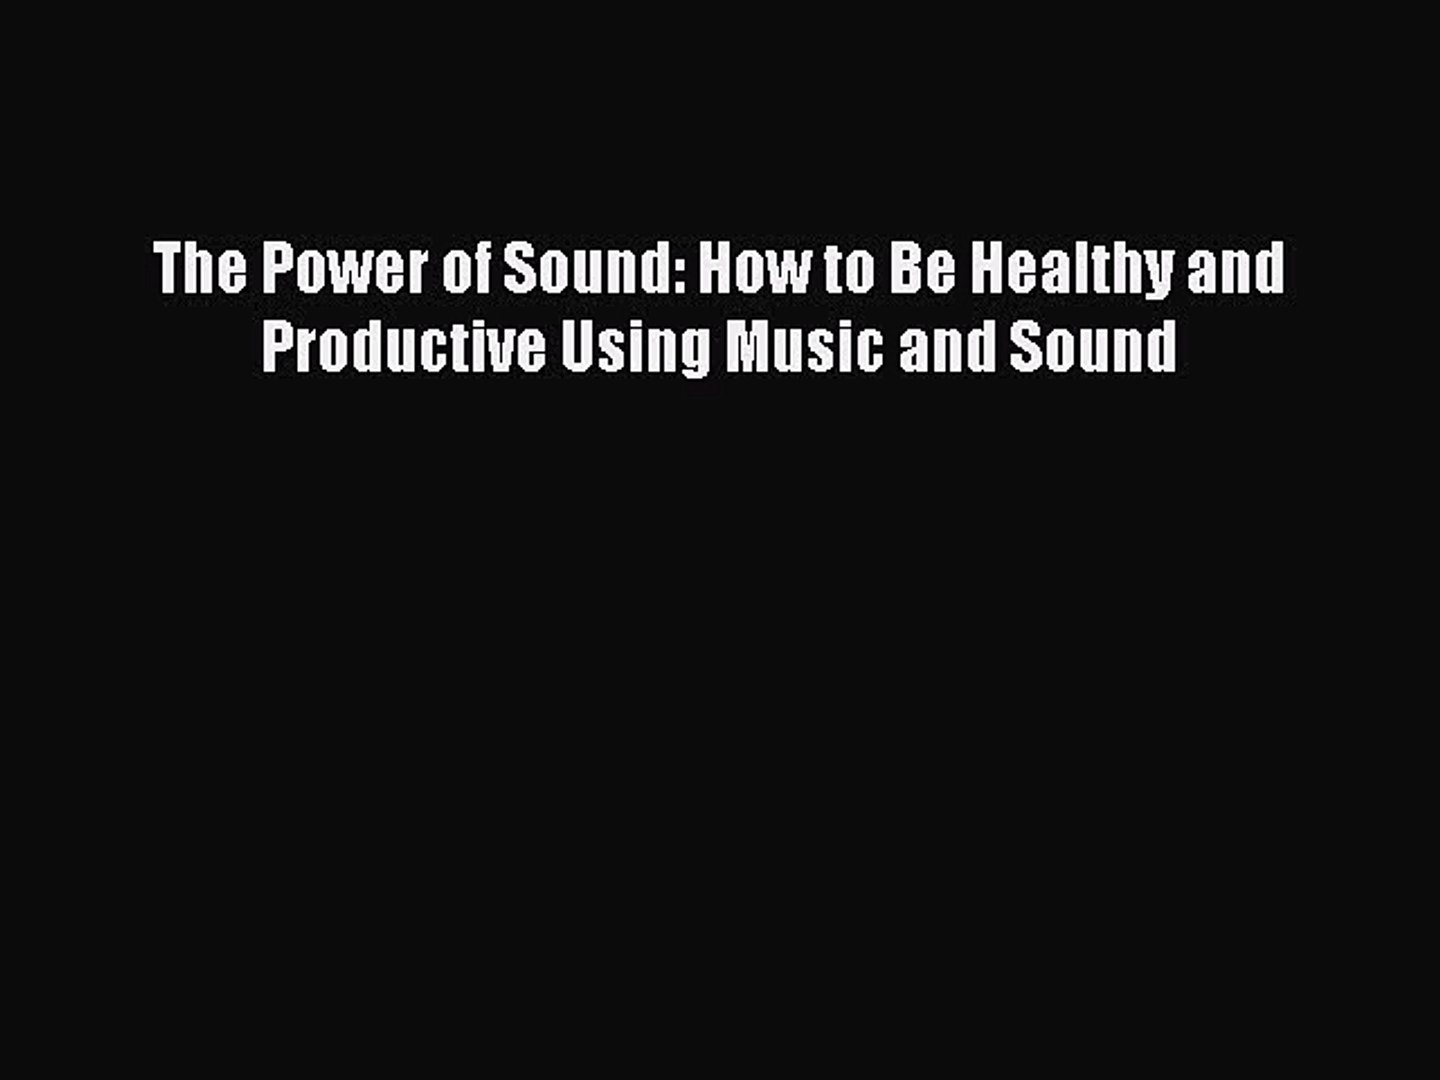 Book The Power of Sound: How to Be Healthy and Productive Using Music and Sound Read Full Ebook